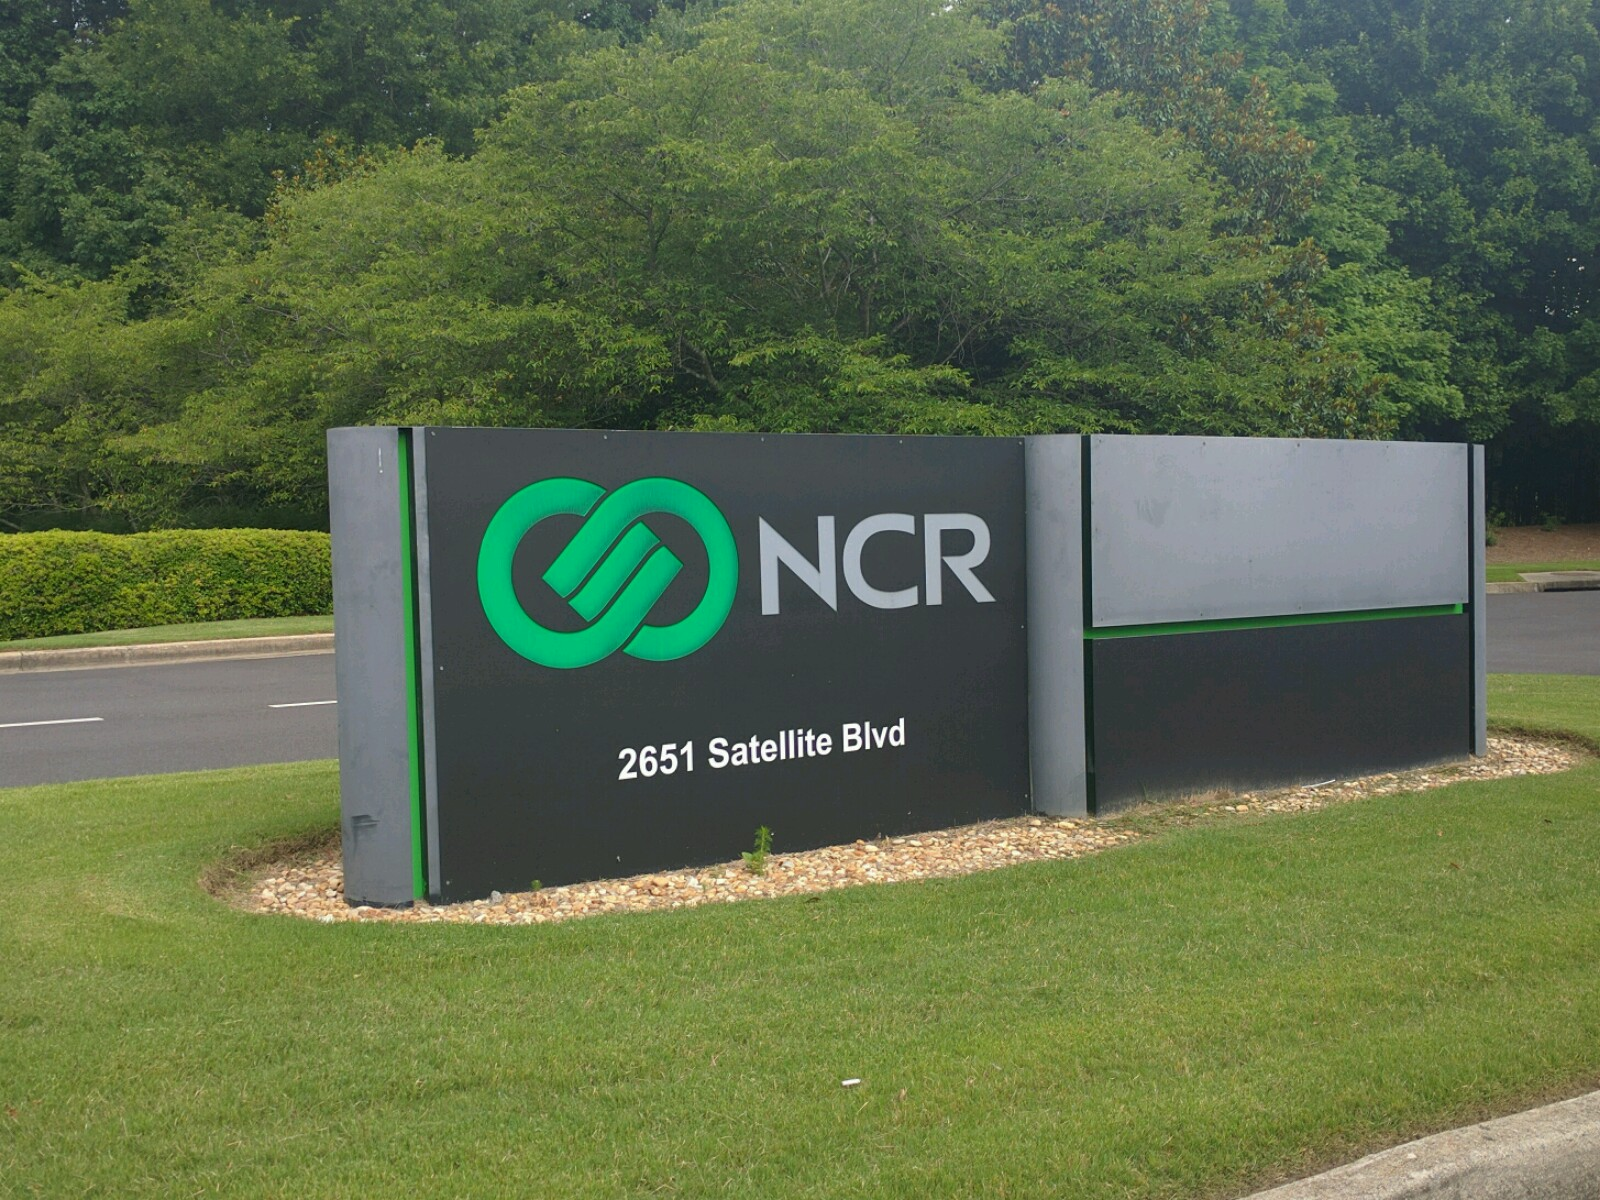 NCR's campus in Duluth, Georgia.